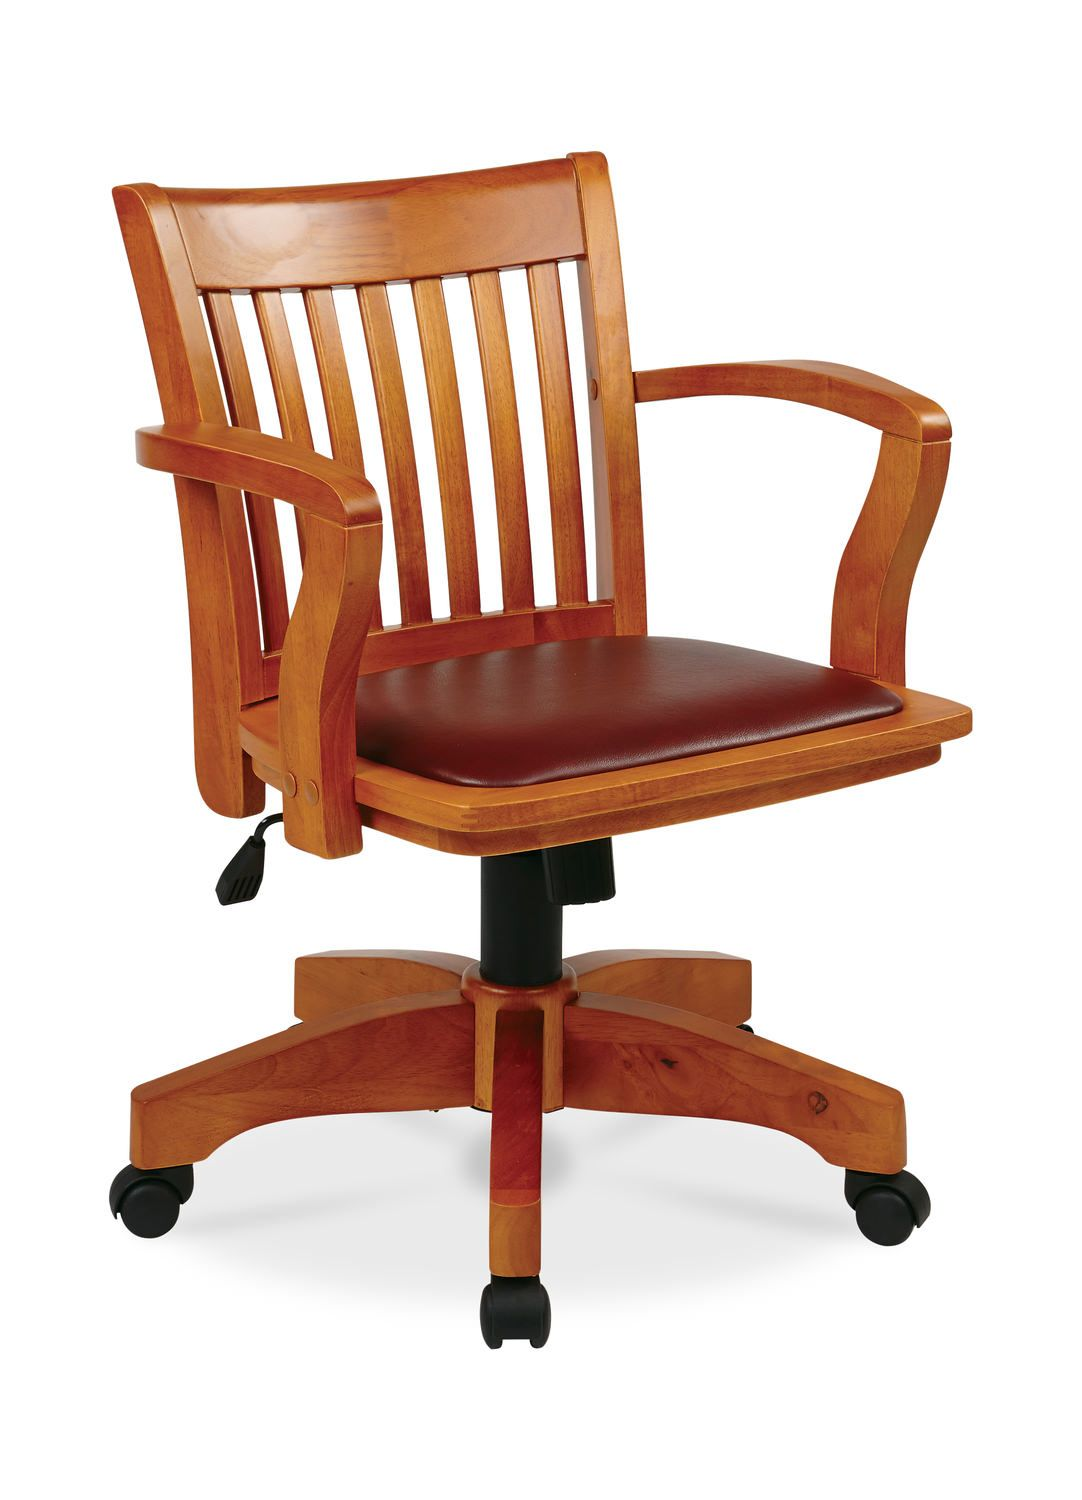 Deluxe Wood Bankers Chair W Arms Bankers Chair Wooden Office Chair Osp Home Furnishings